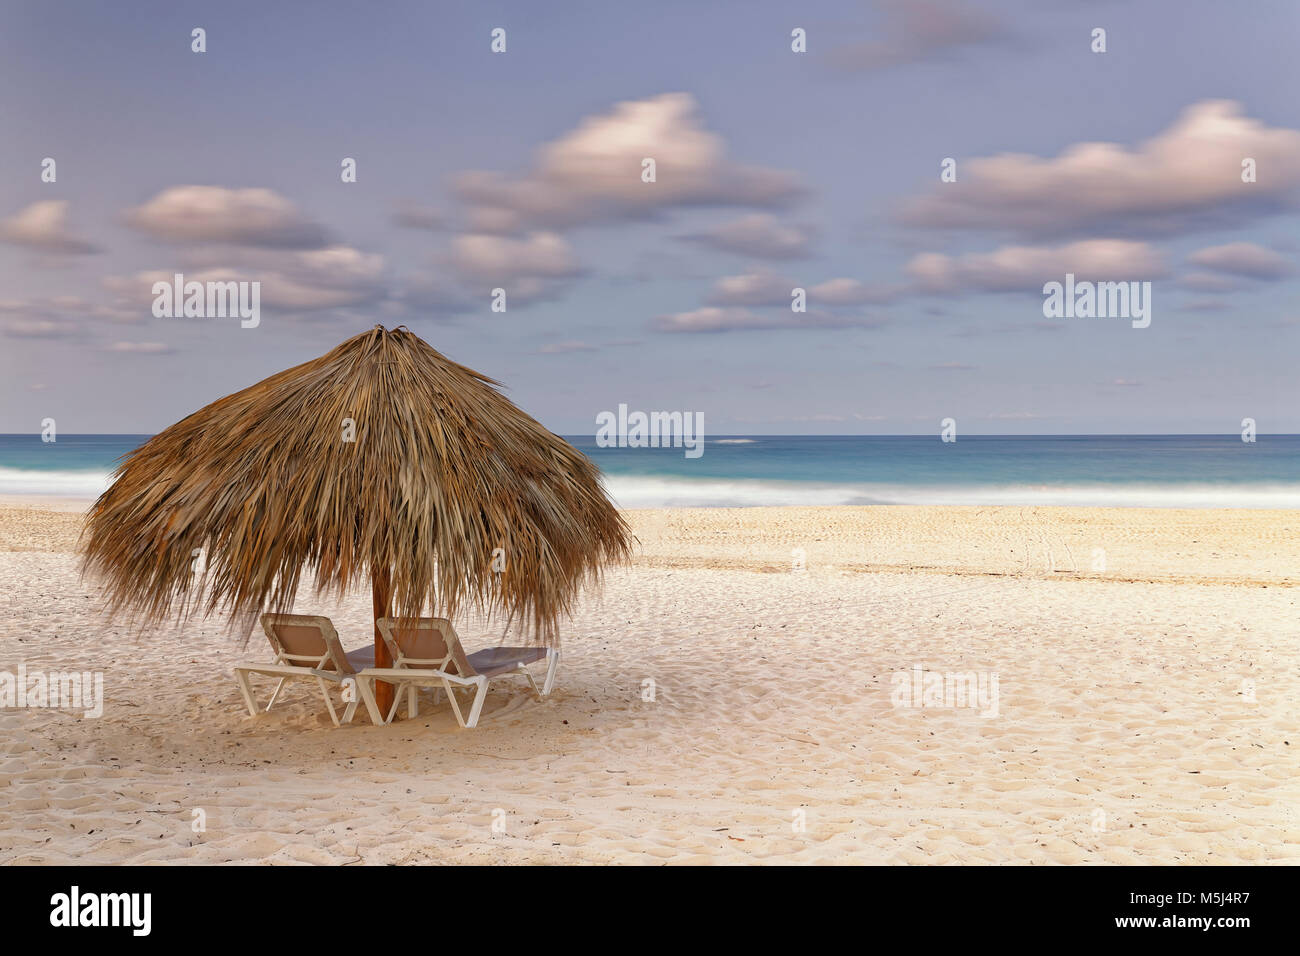 Carribean, Dominican Republic, Punta Cana, Playa Bavaro, beach at sunset Stock Photo